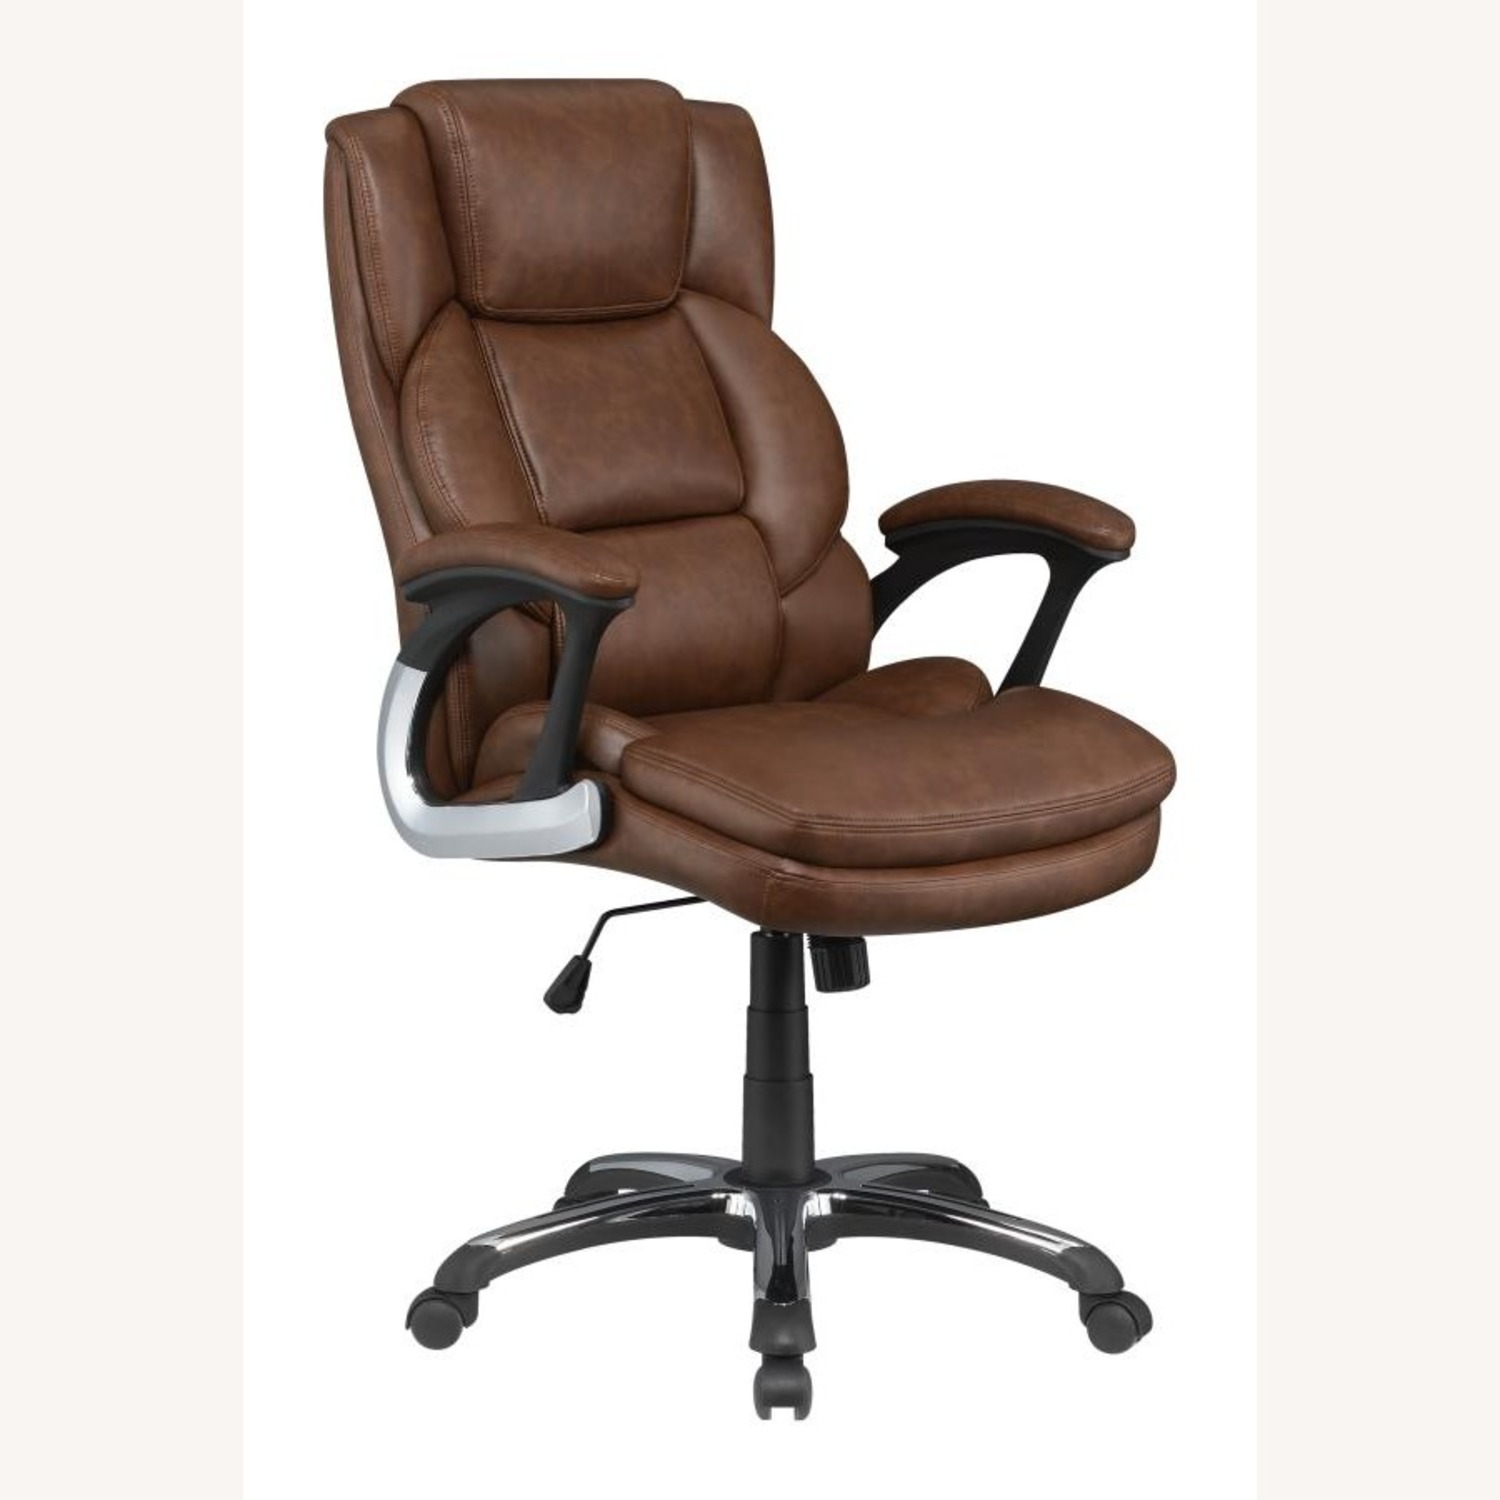 Office Chair In Tufted Brown Leatherette Finish - image-0